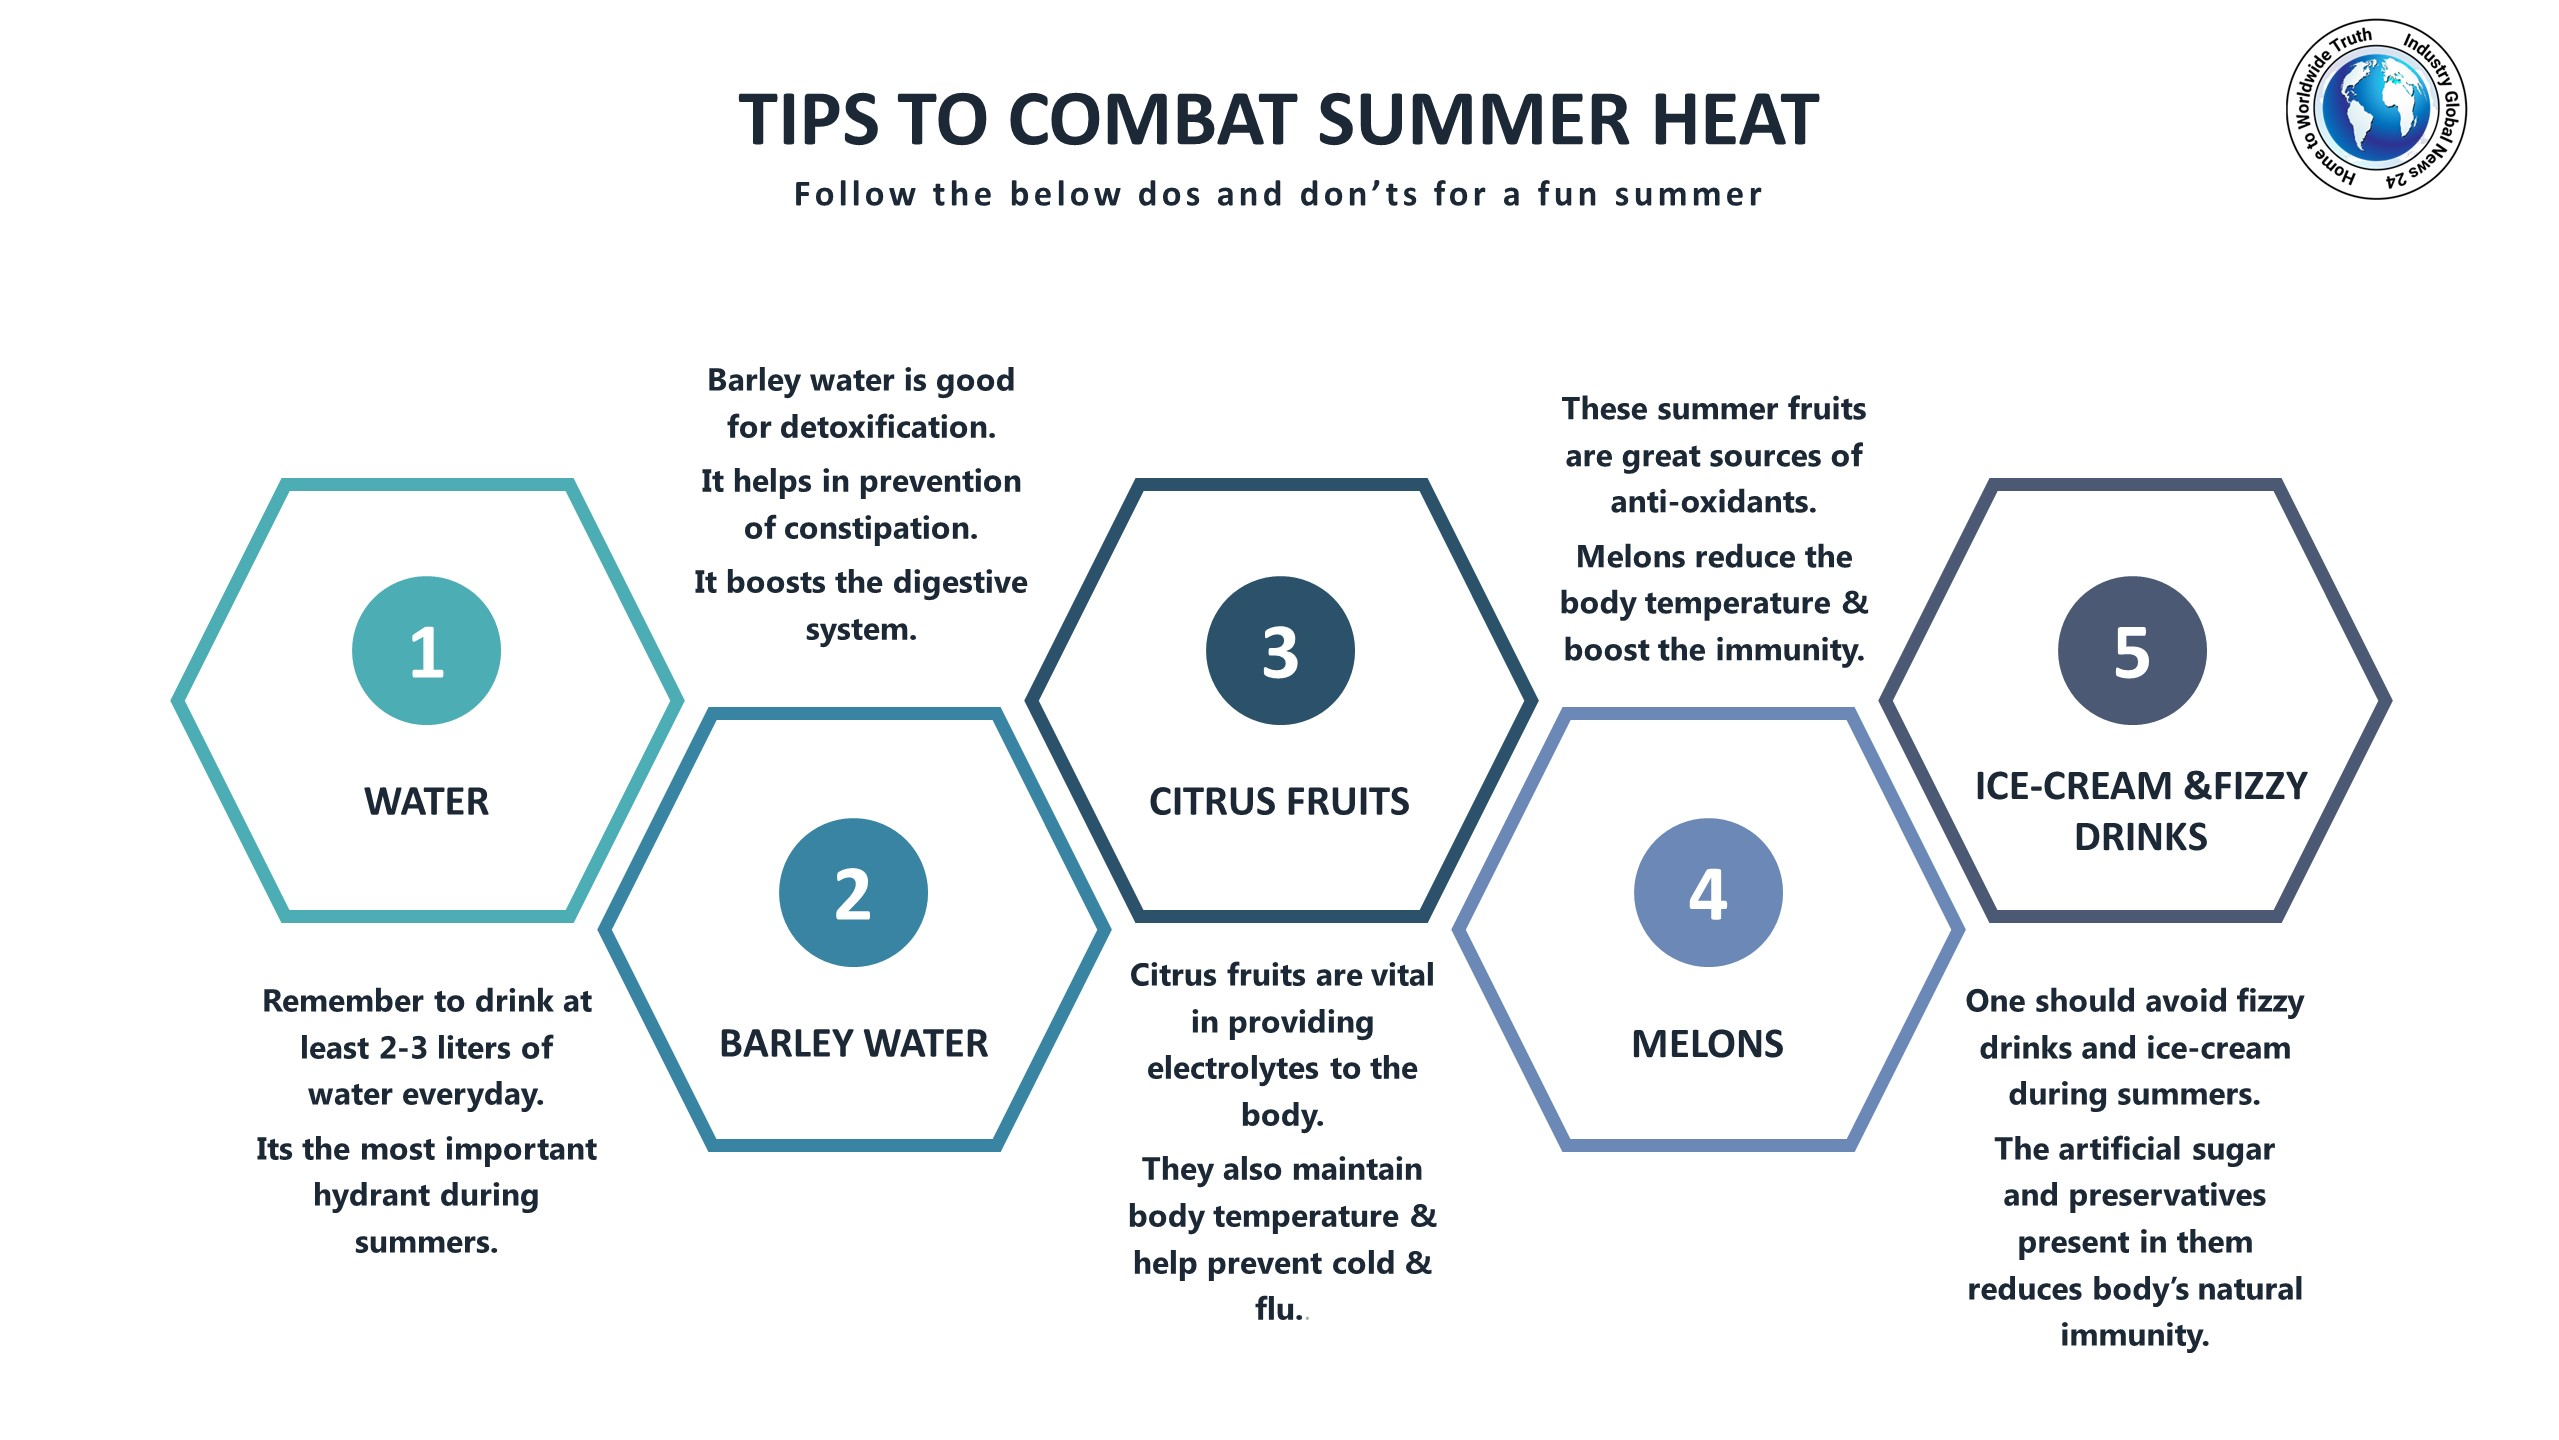 TIPS TO COMBAT SUMMER HEAT